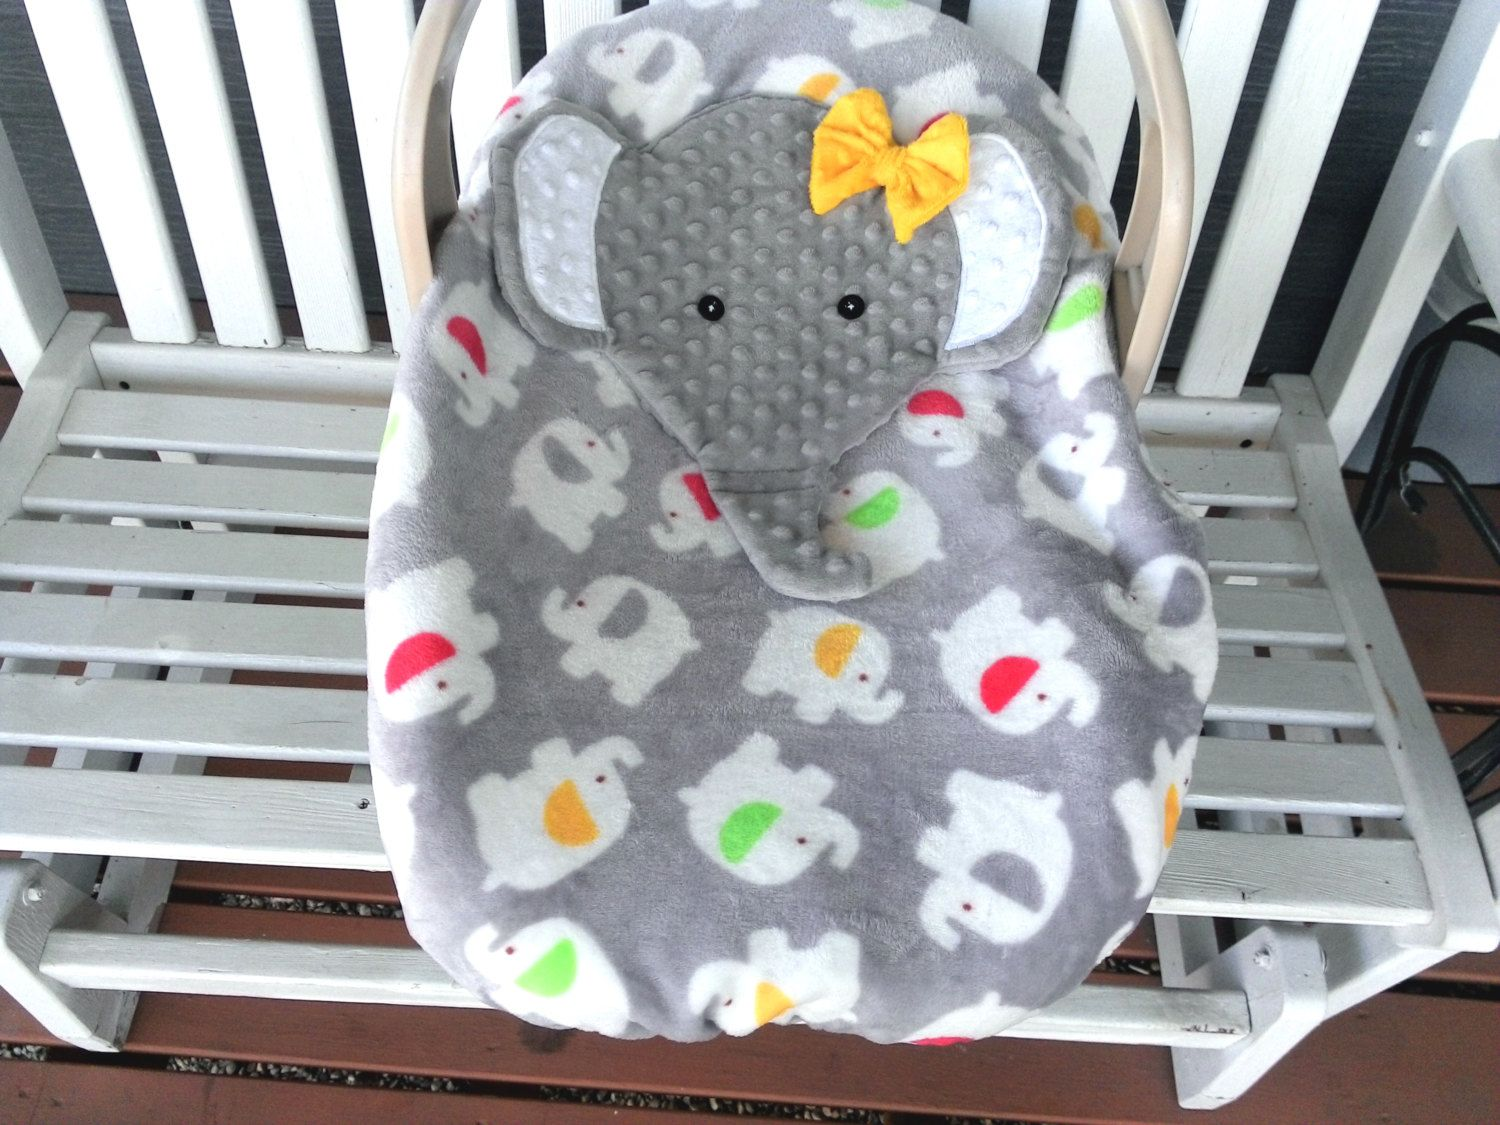 Made To Order Girls Appliqued Elephant Infant Baby Carrier Cover Soft Grey Velour FleeceMinky By Lindasnd On Etsy